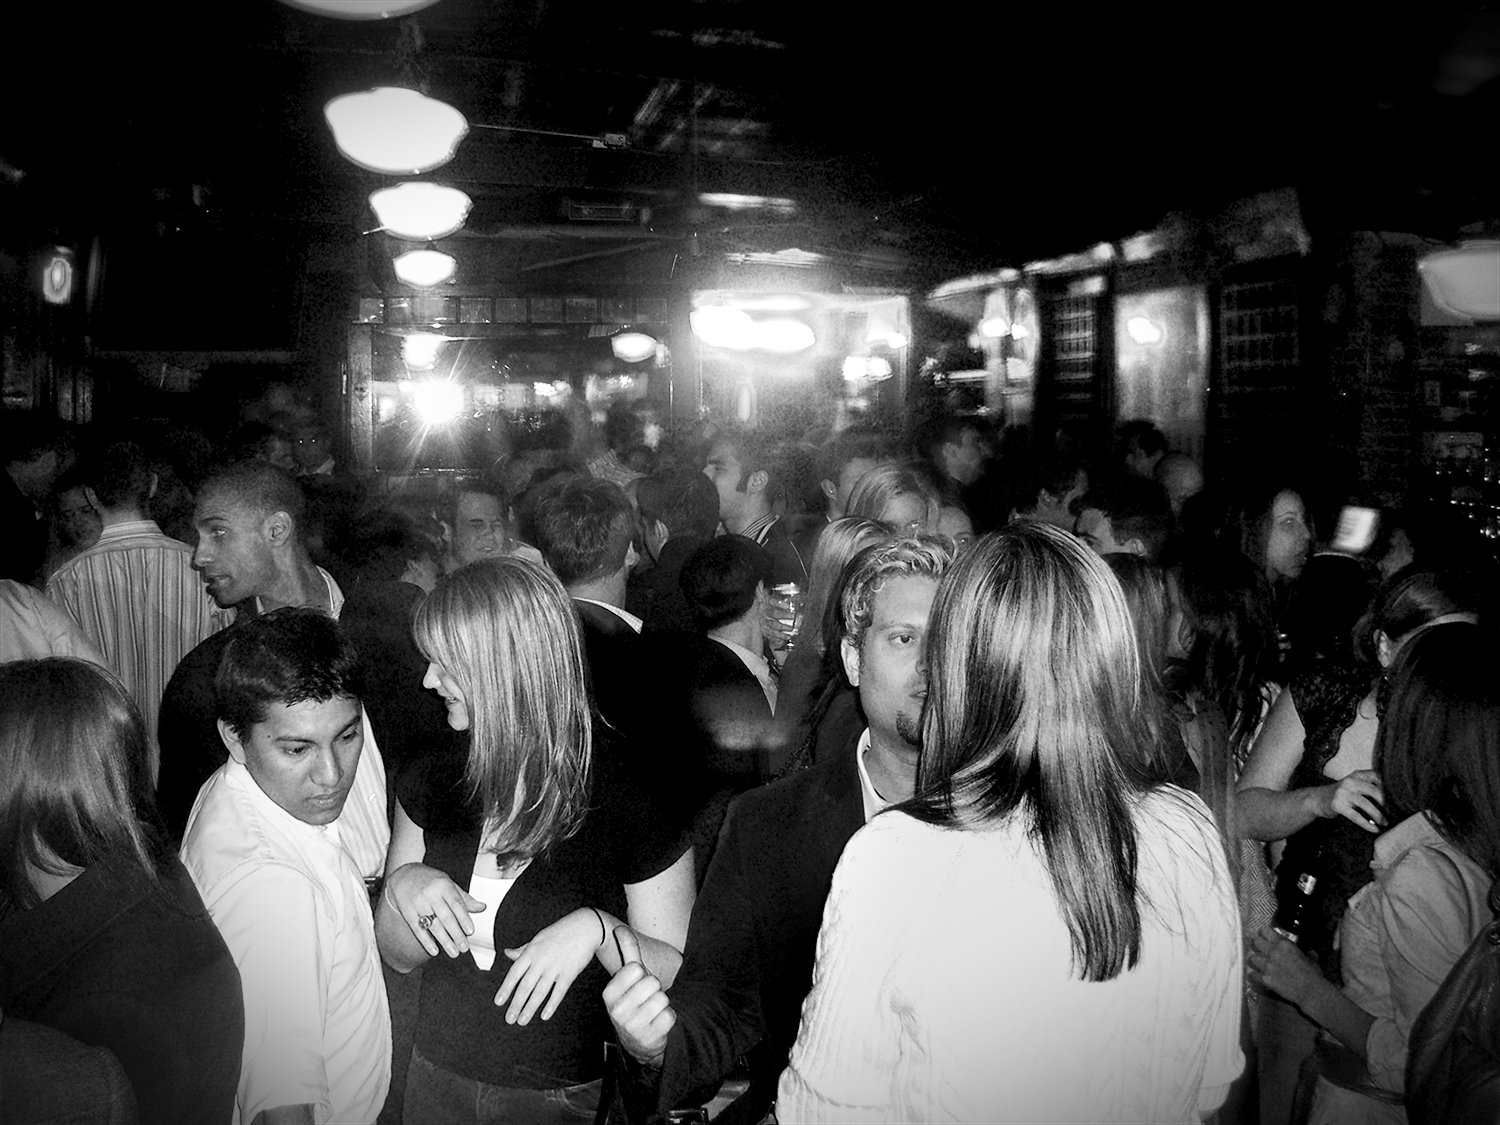 drh_nyc-crowd-old-bw.jpg